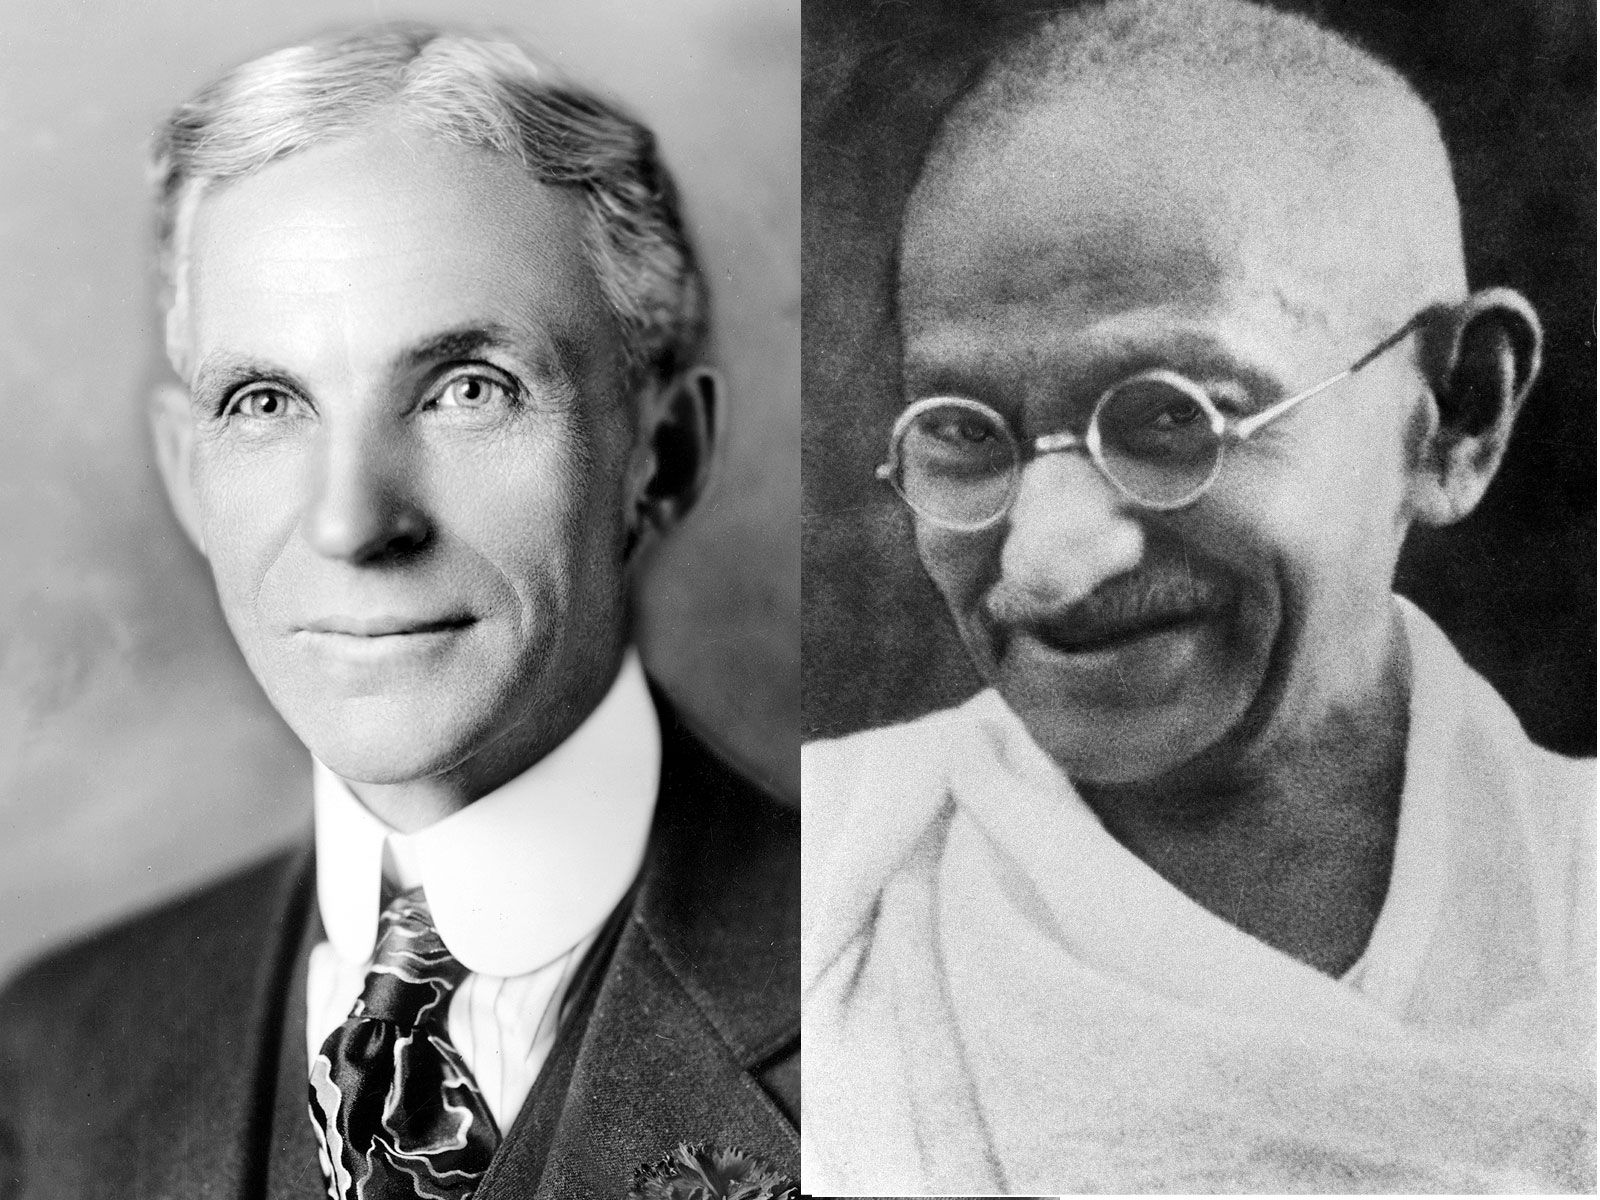 The Unlikely Bromance Between Henry Ford and Mohandas Gandhi